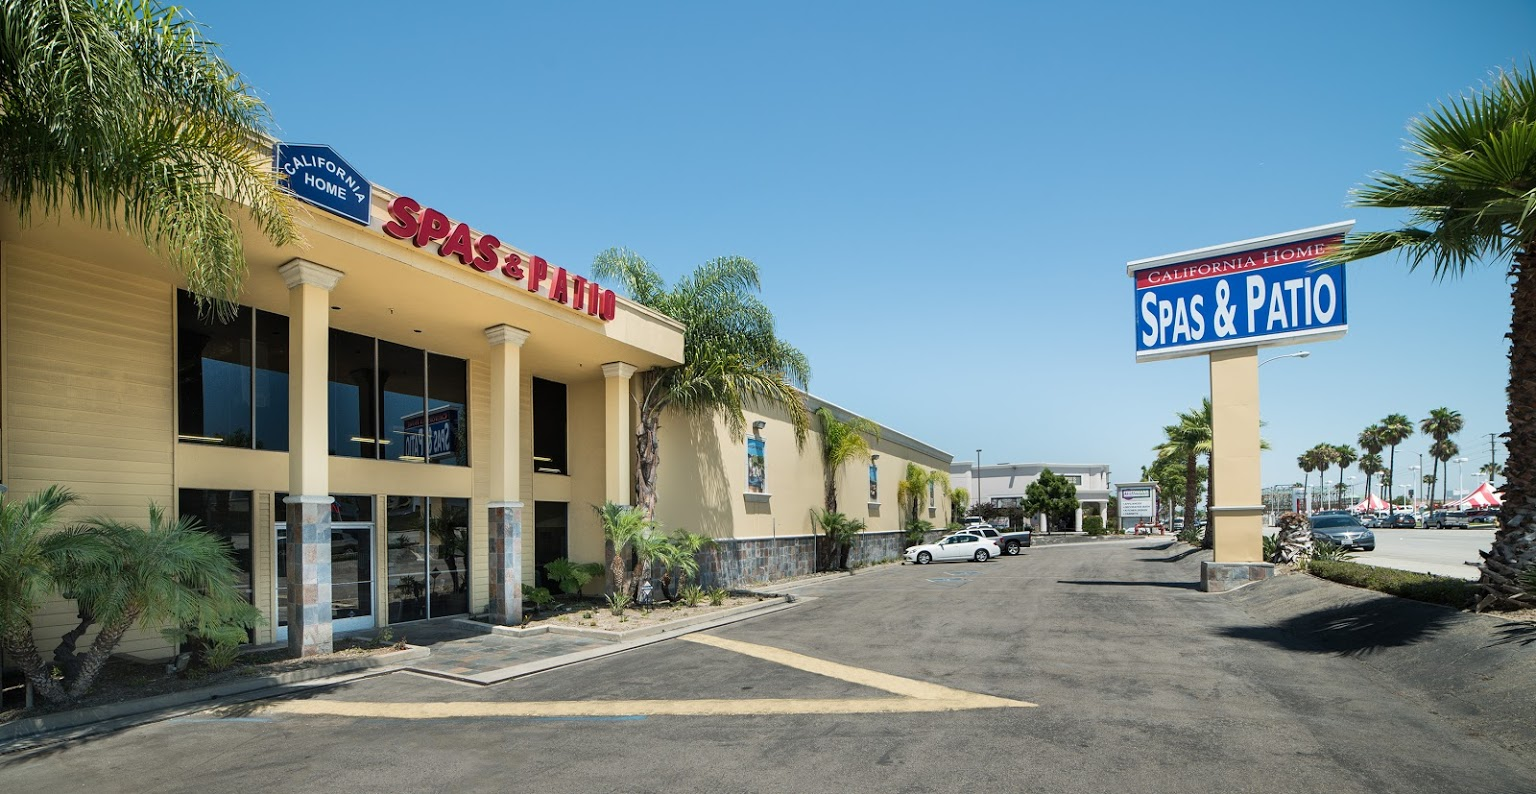 Front view of California Home Spas Hot Tub Store